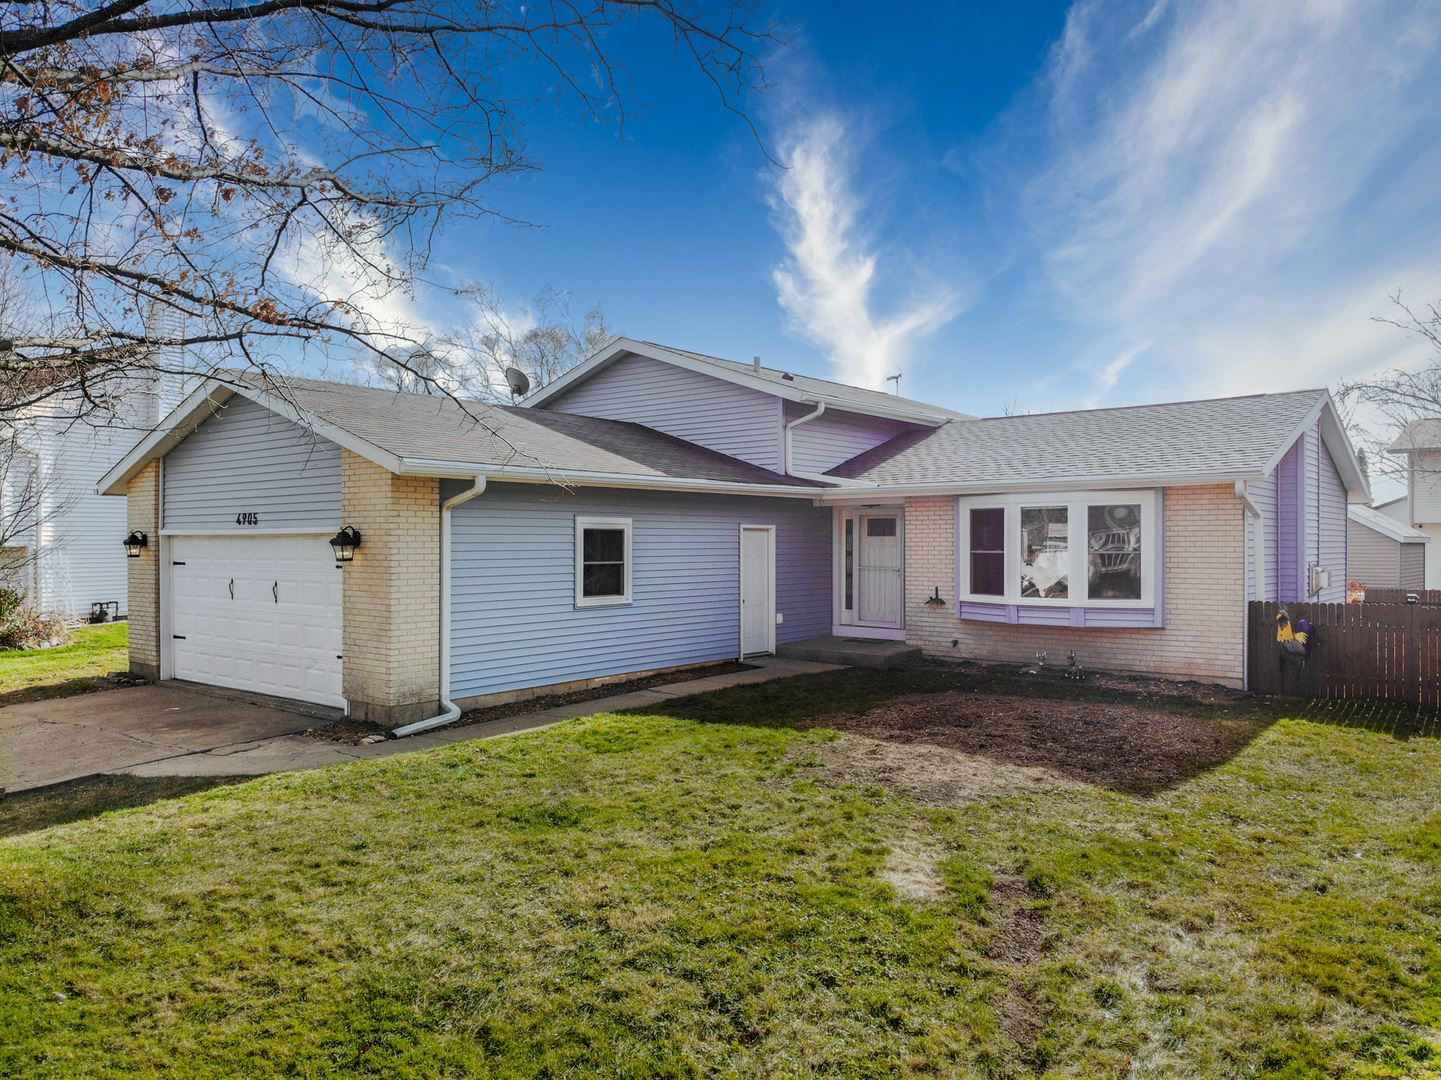 4905 Pyndale Drive, McHenry, IL 60050 - #: 10940114